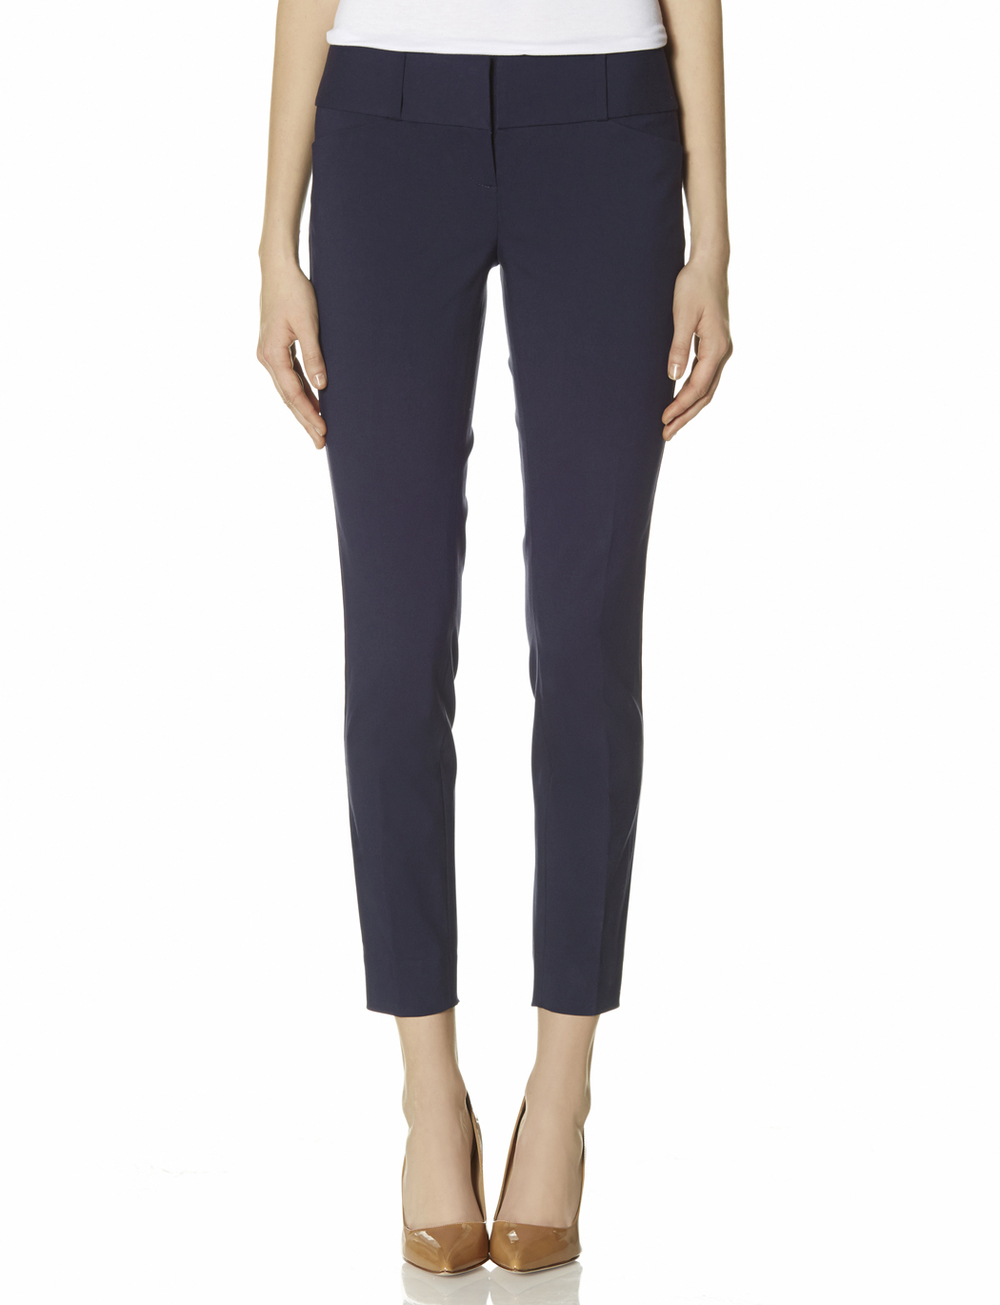 Exact Stretch Zip pocket ankle pants. Available in petites with a 24 inch inseam. Navy, black, Heather Blue. The Limited. Was: $69.95 Now: $39.90.